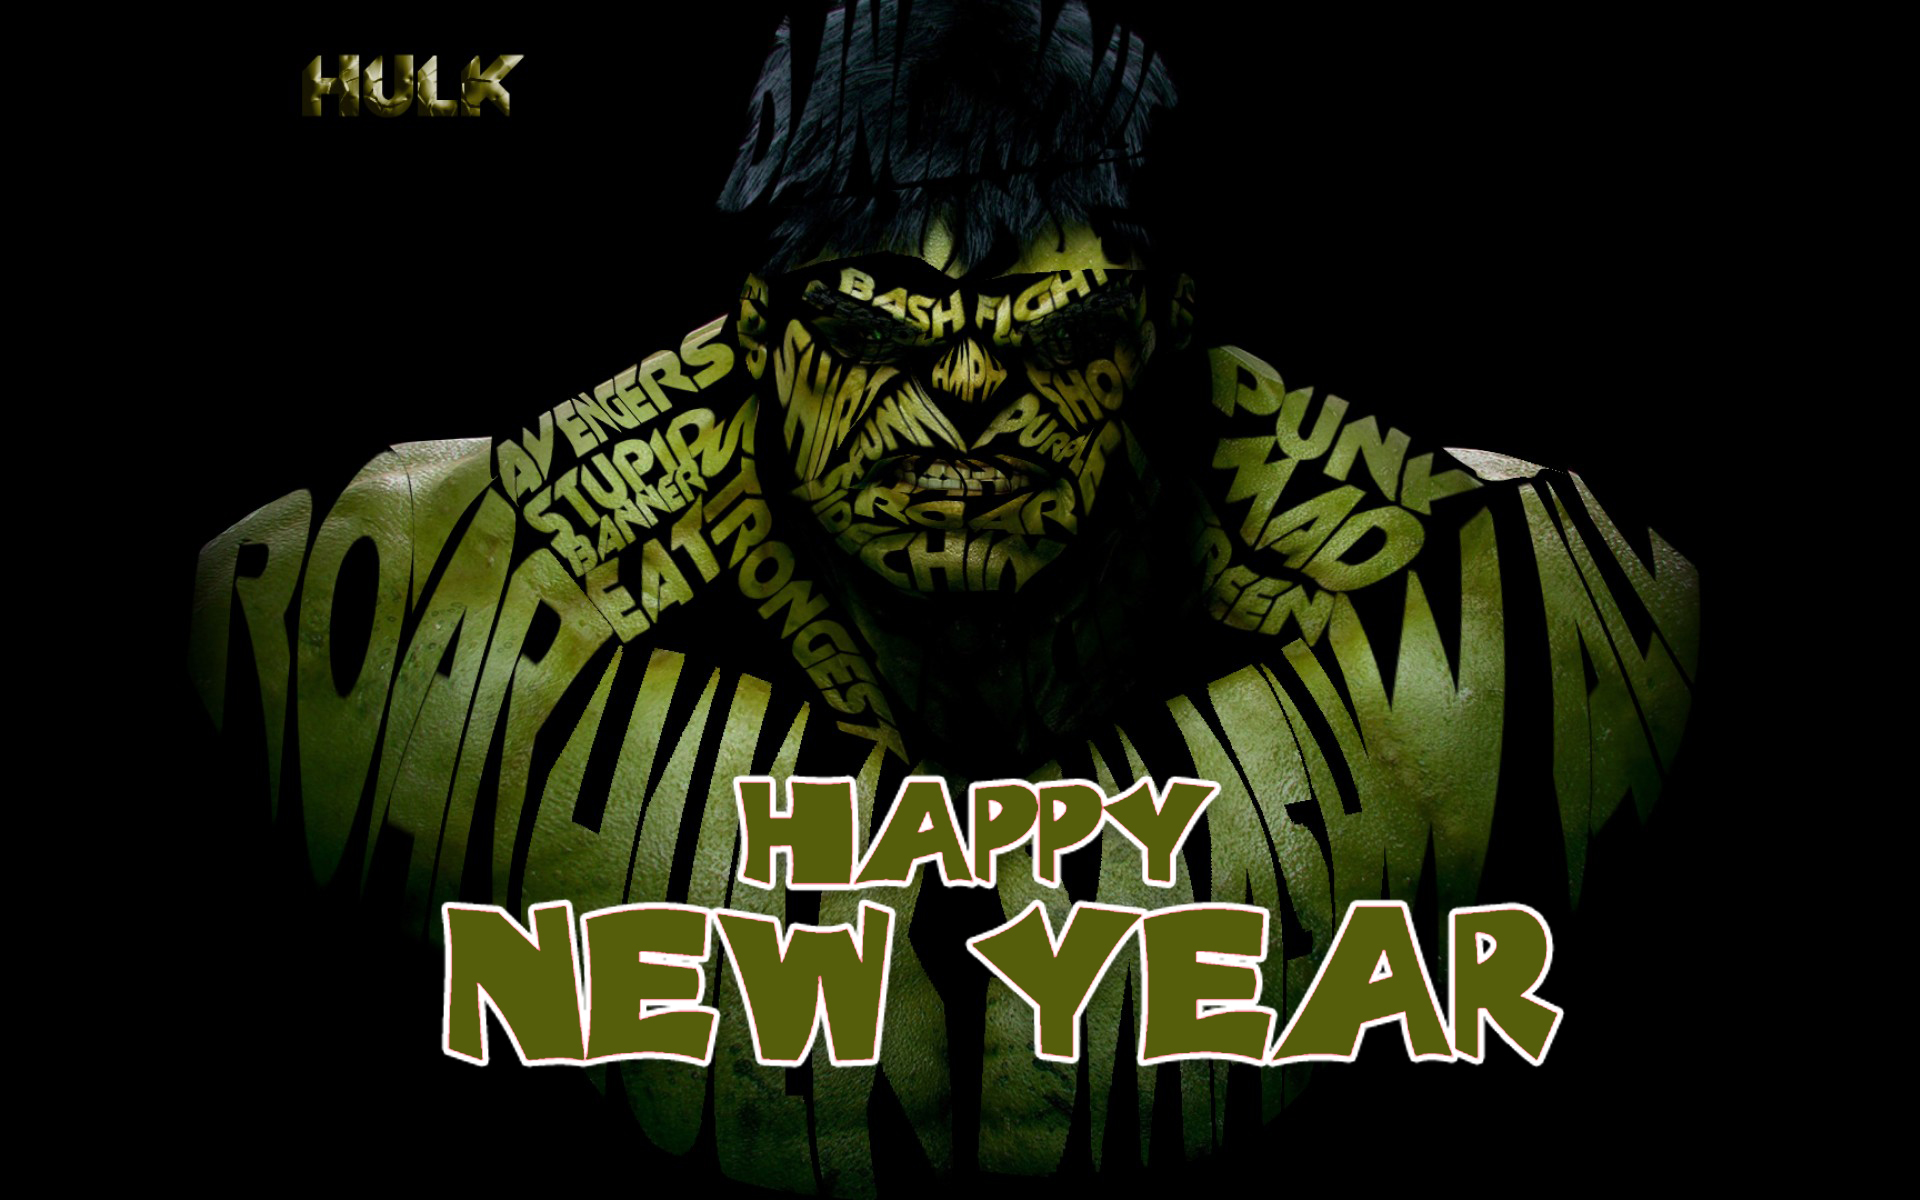 happy new year incredible hulk marvel avenger superhero background hd wallpaper